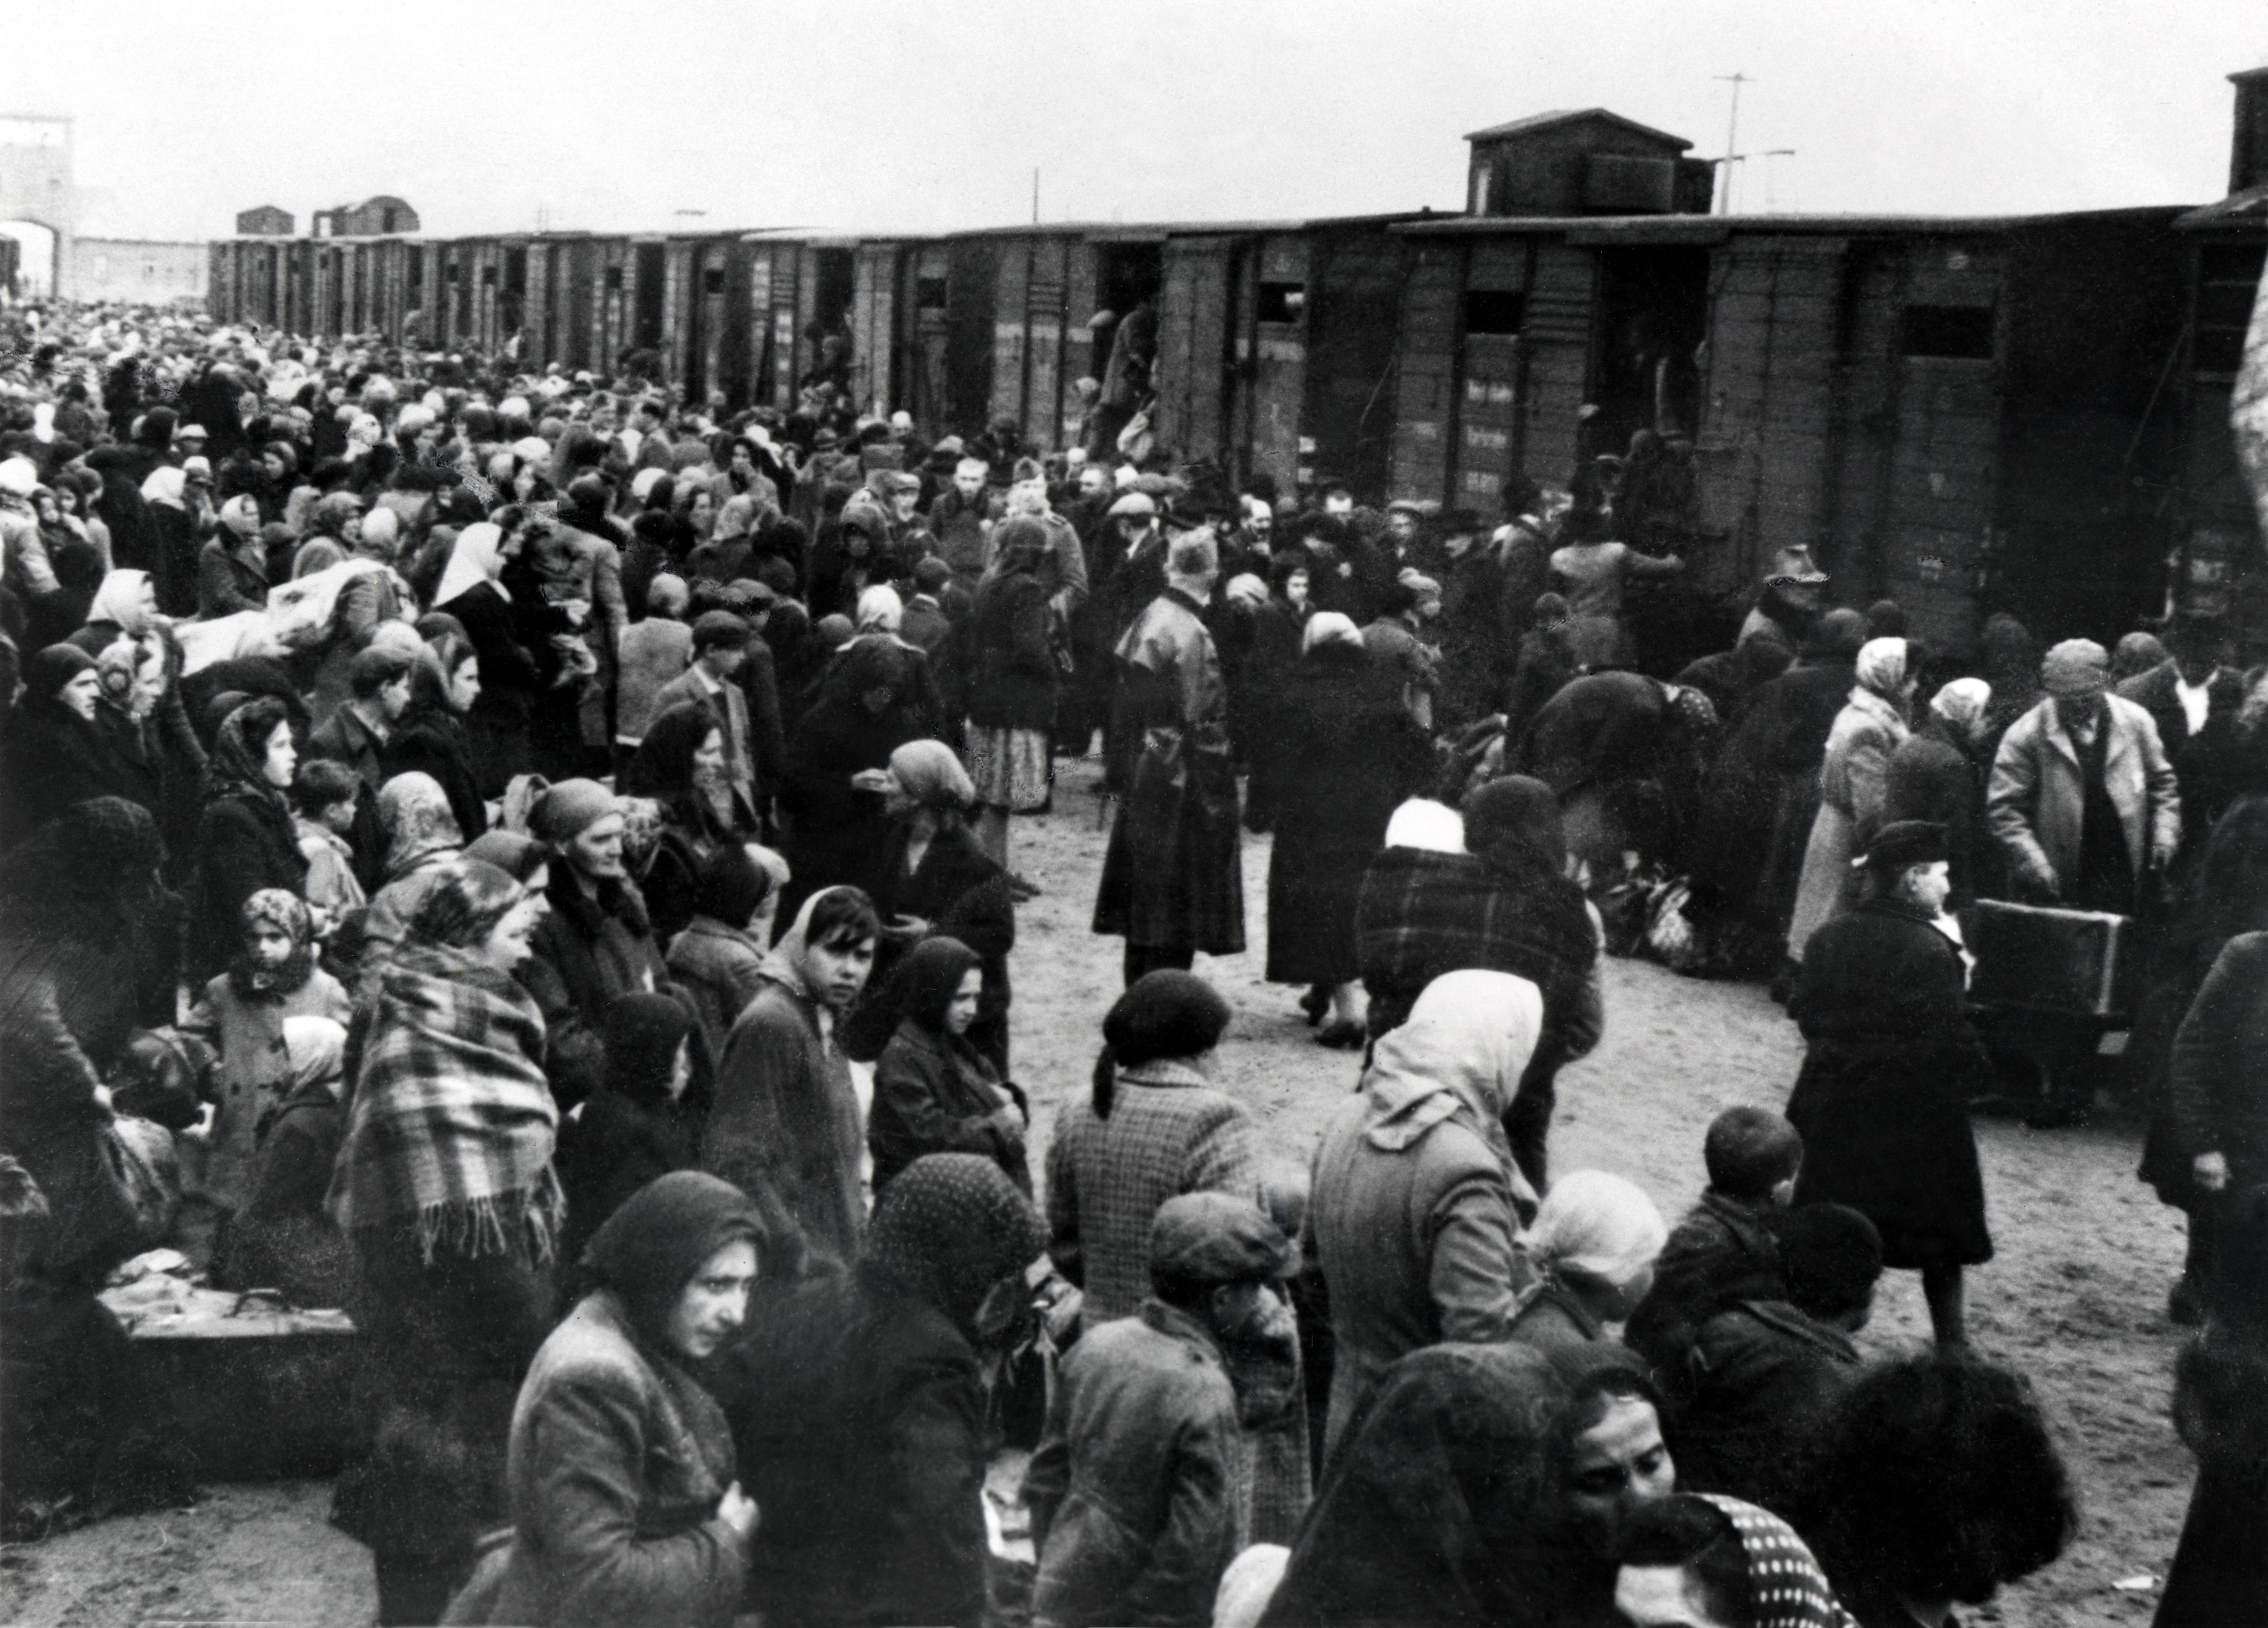 Jewish prisoners arrive at Auschwitz concentration camp in Nazi-occupied Poland